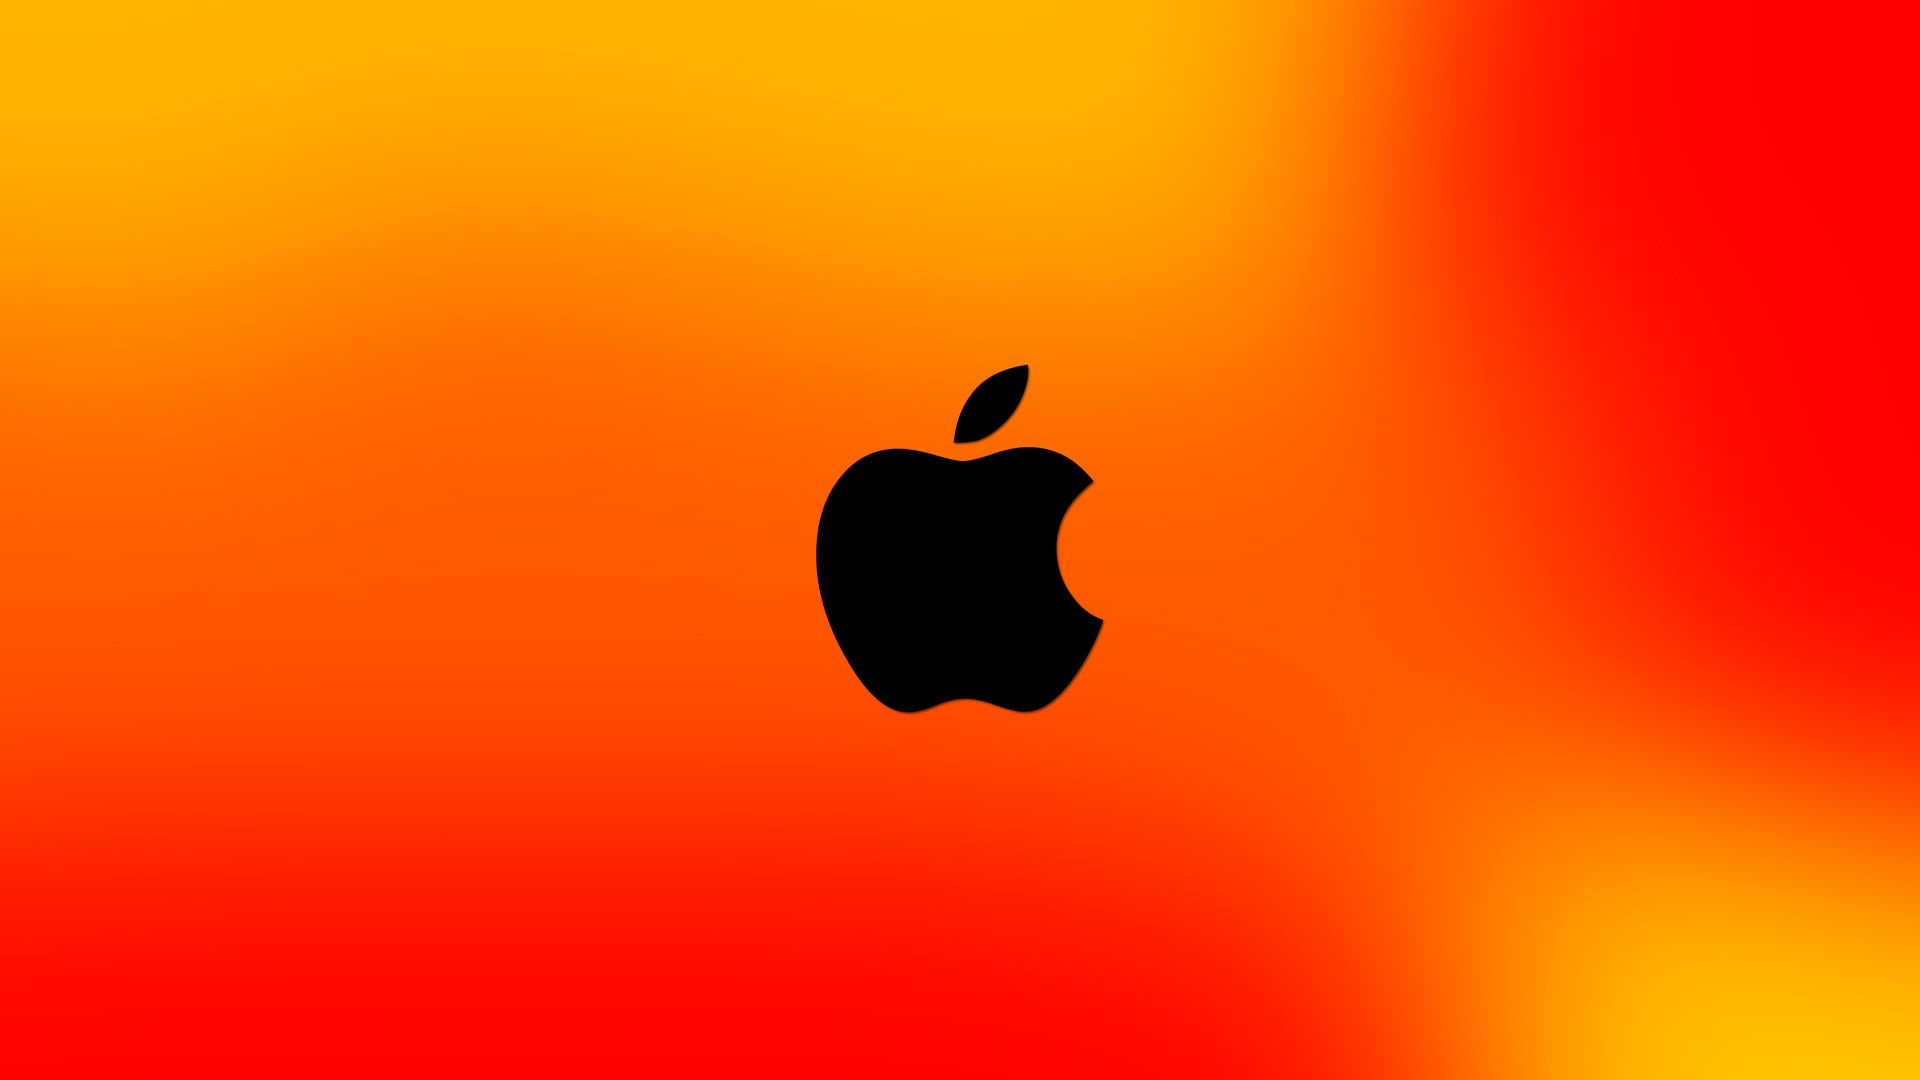 Apple logo wallpaper ...